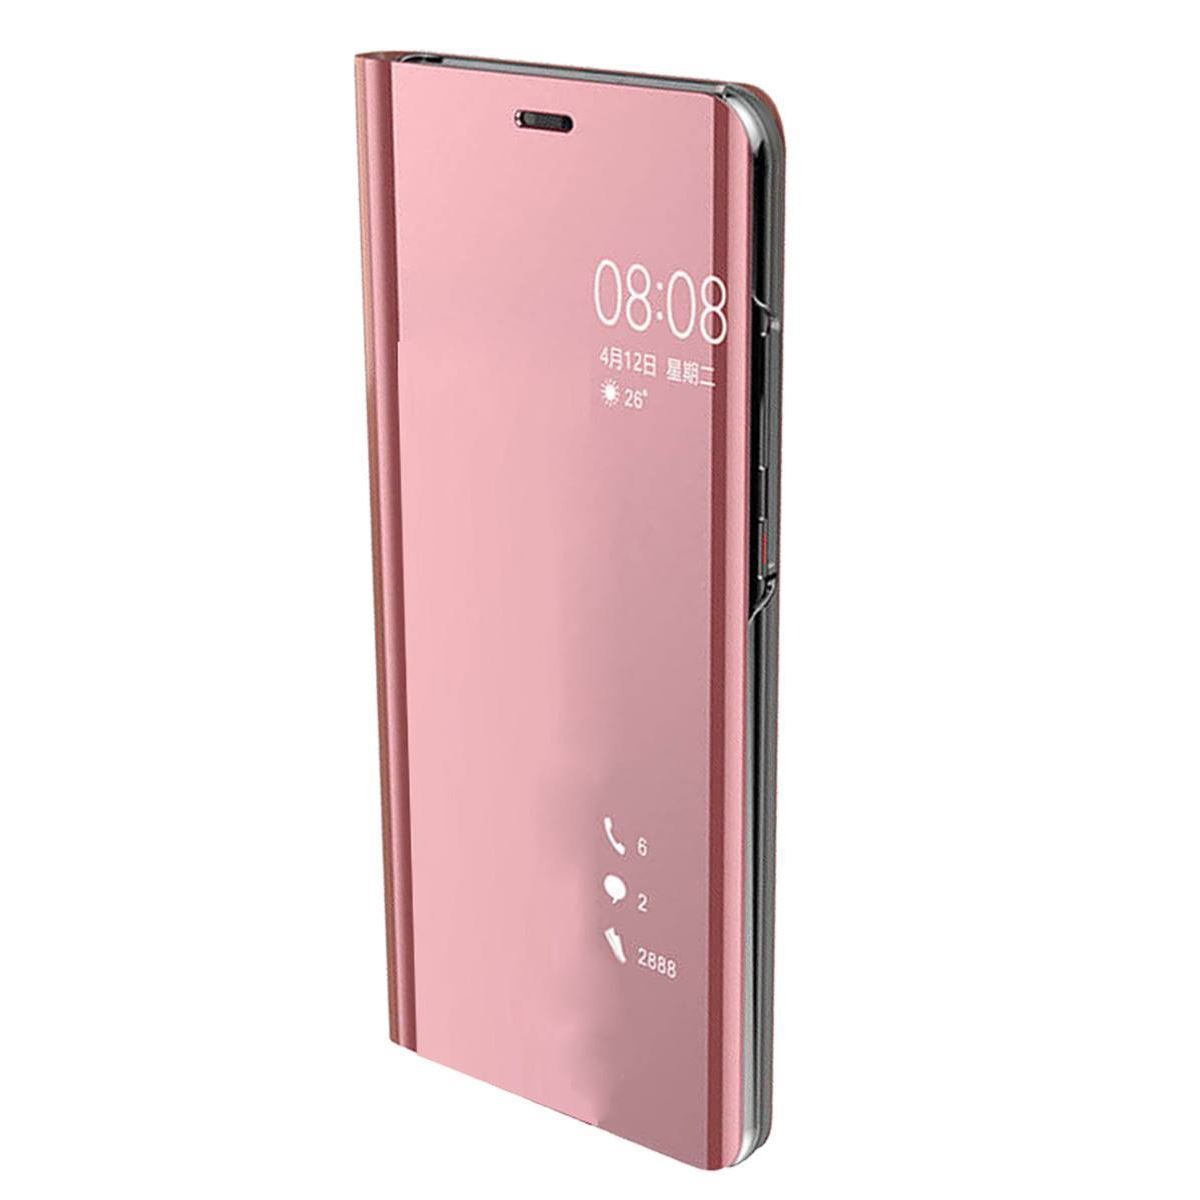 Huawei Mate 20 Pro Case Smart View Mirror Flip Stand Cover - Rose Gold